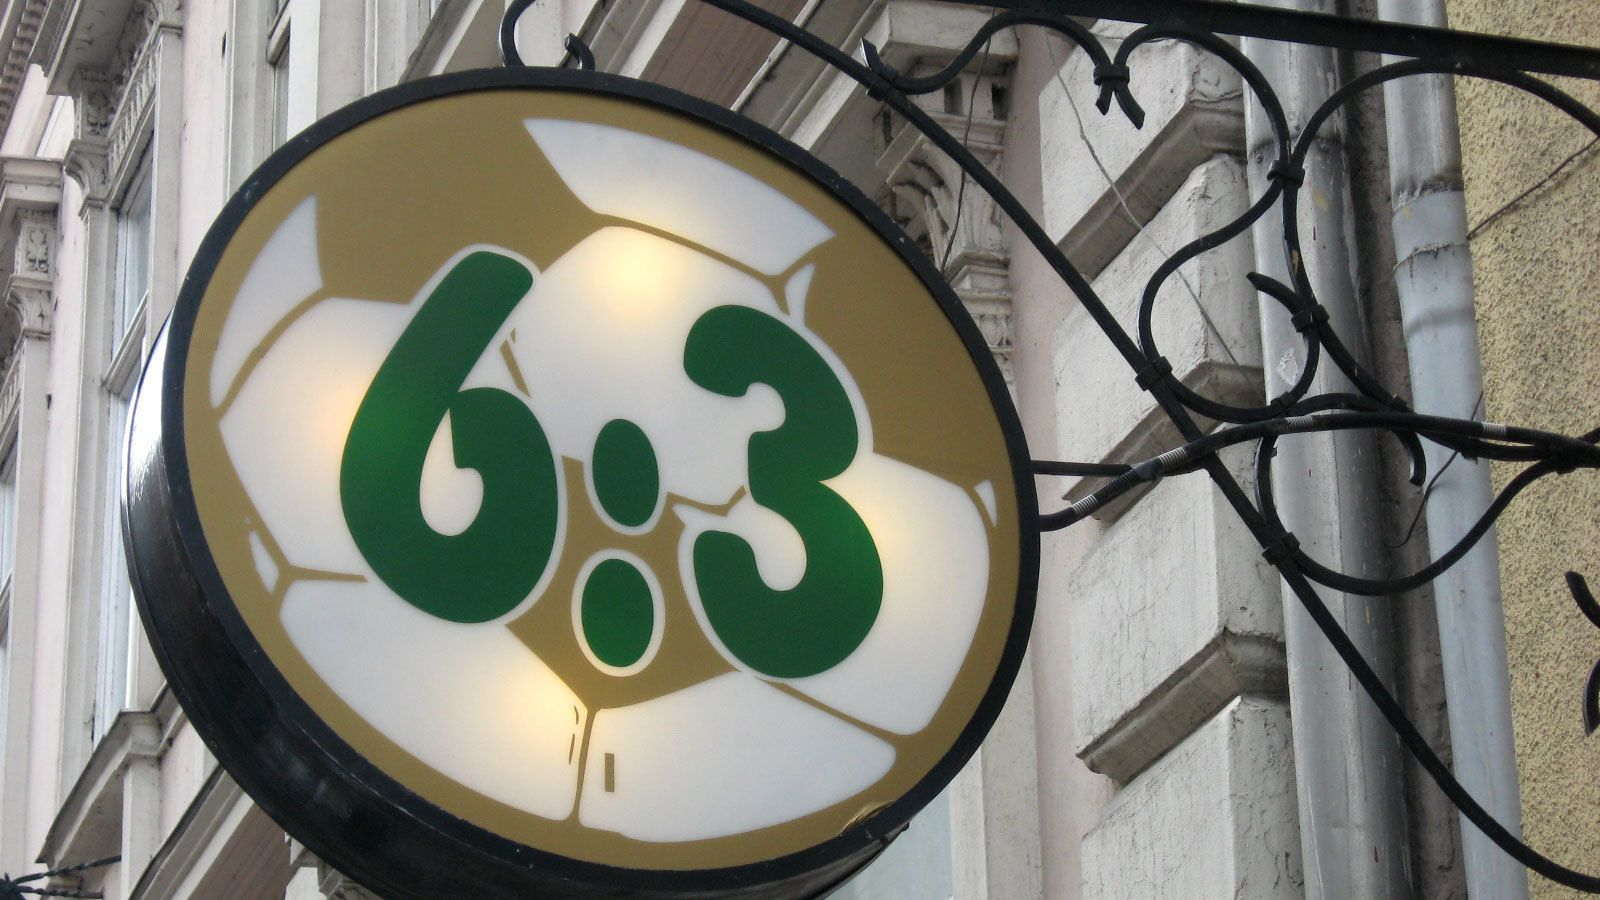 Sign that reads 6:3 in Budapest